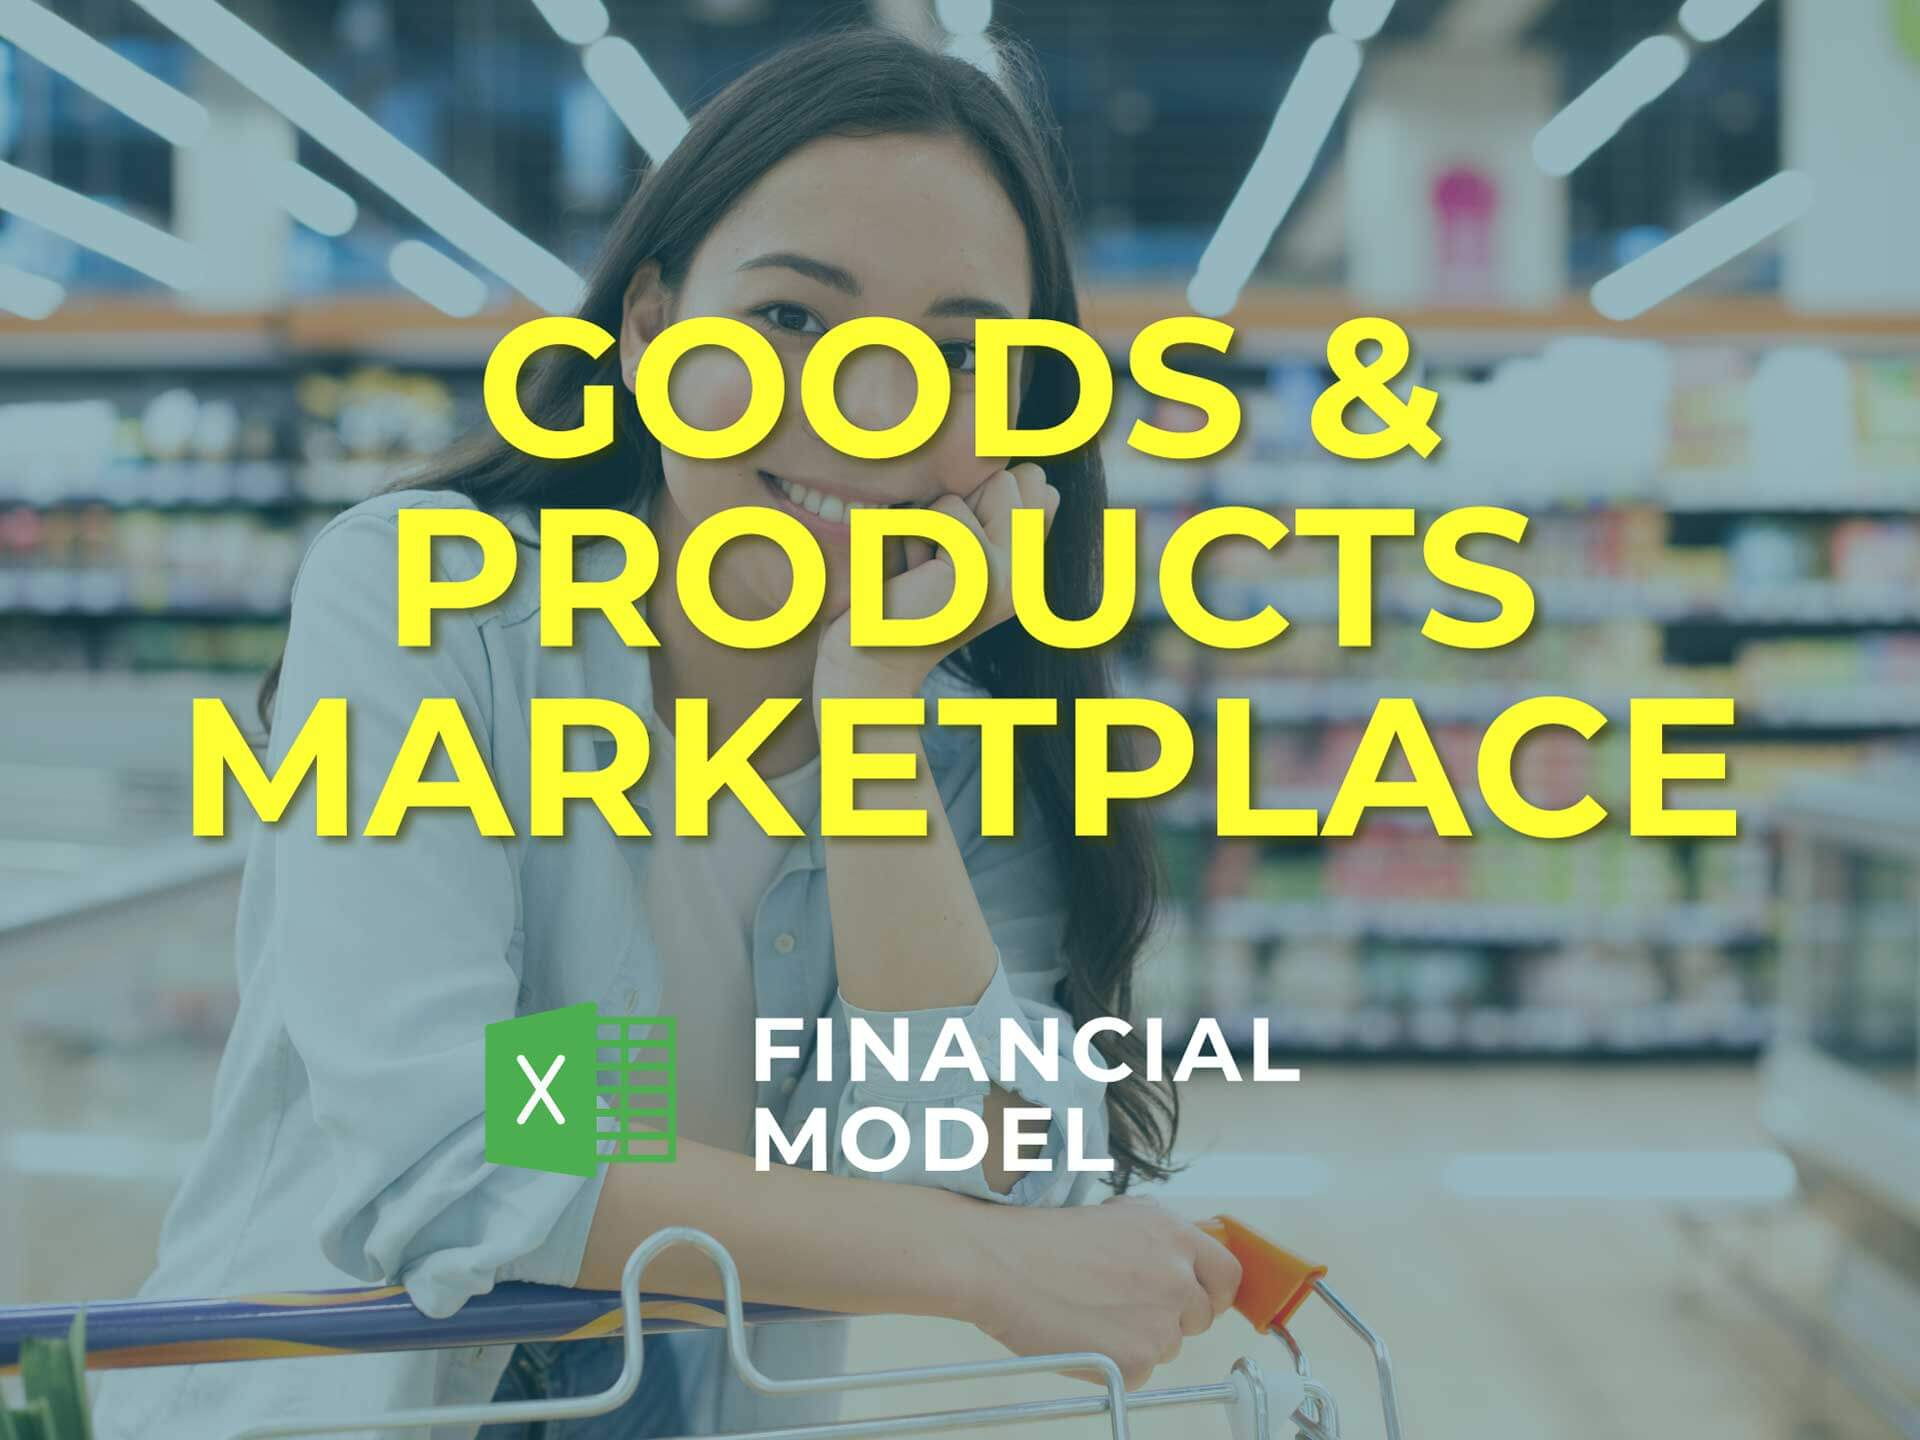 Goods & Products Marketplace